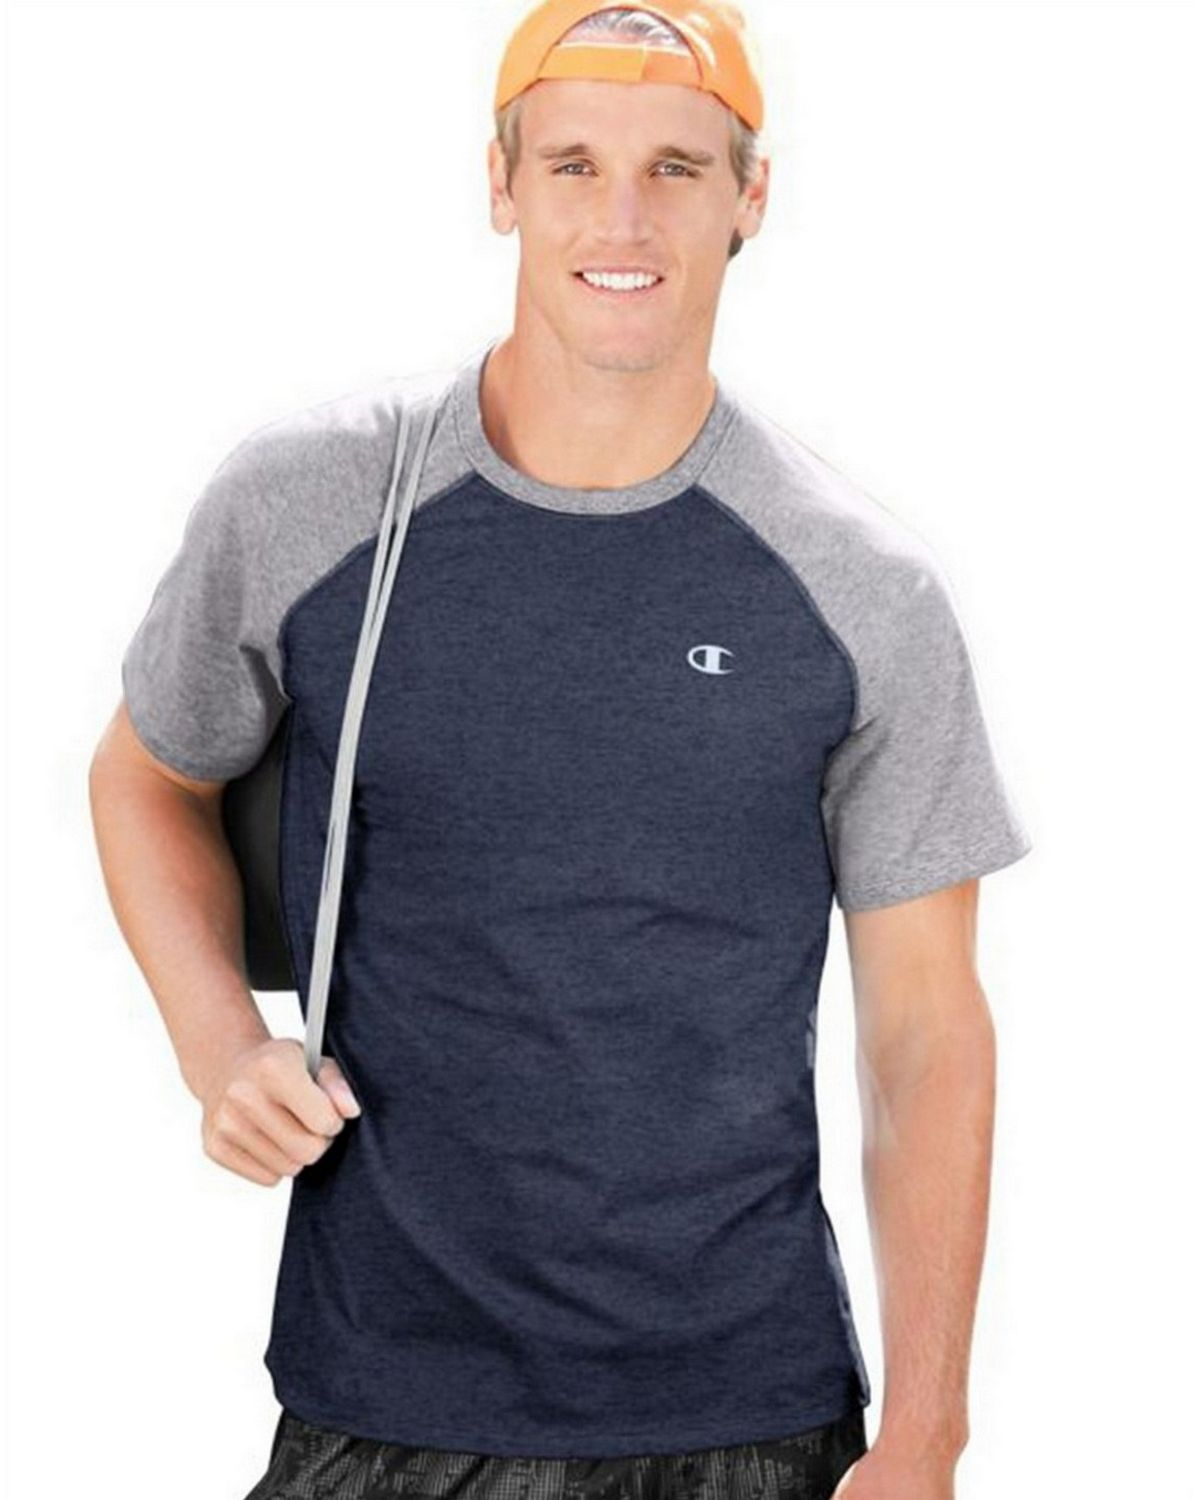 Champion T8822 Vapor Mens Tee - Champ Navy Heather/Oxford Grey - XXL T8822